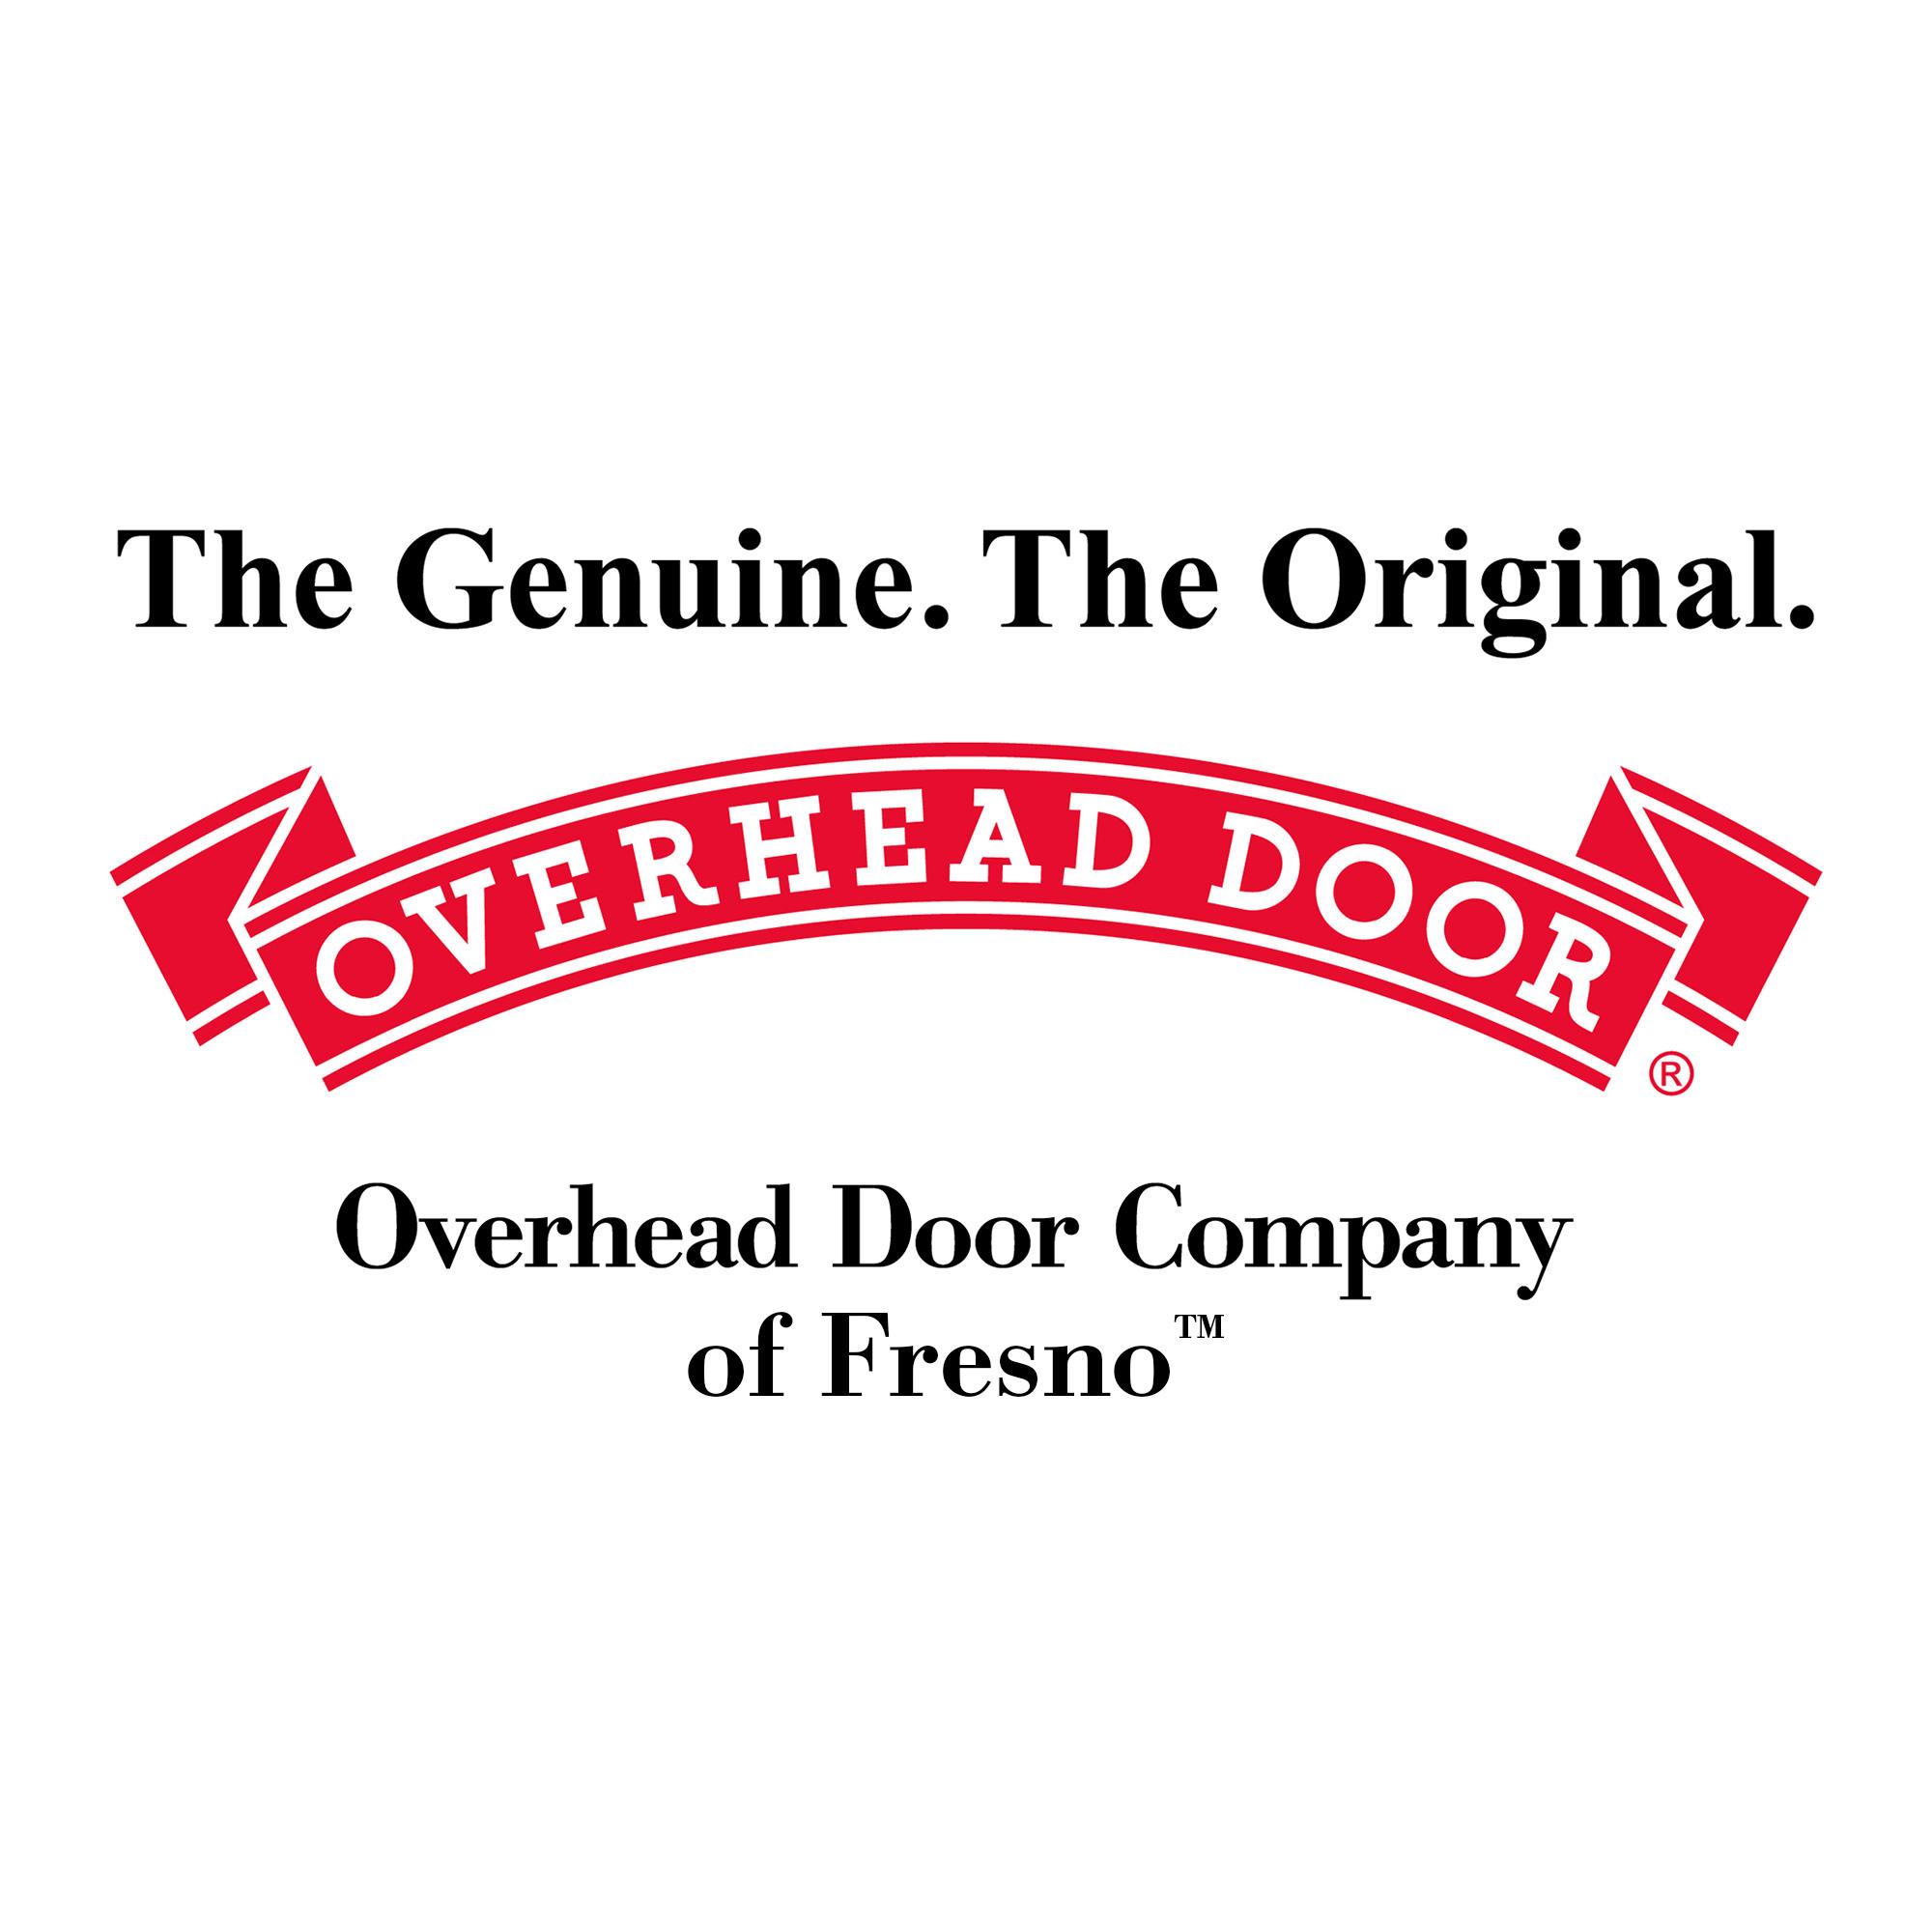 The Overhead Door Company of Fresno